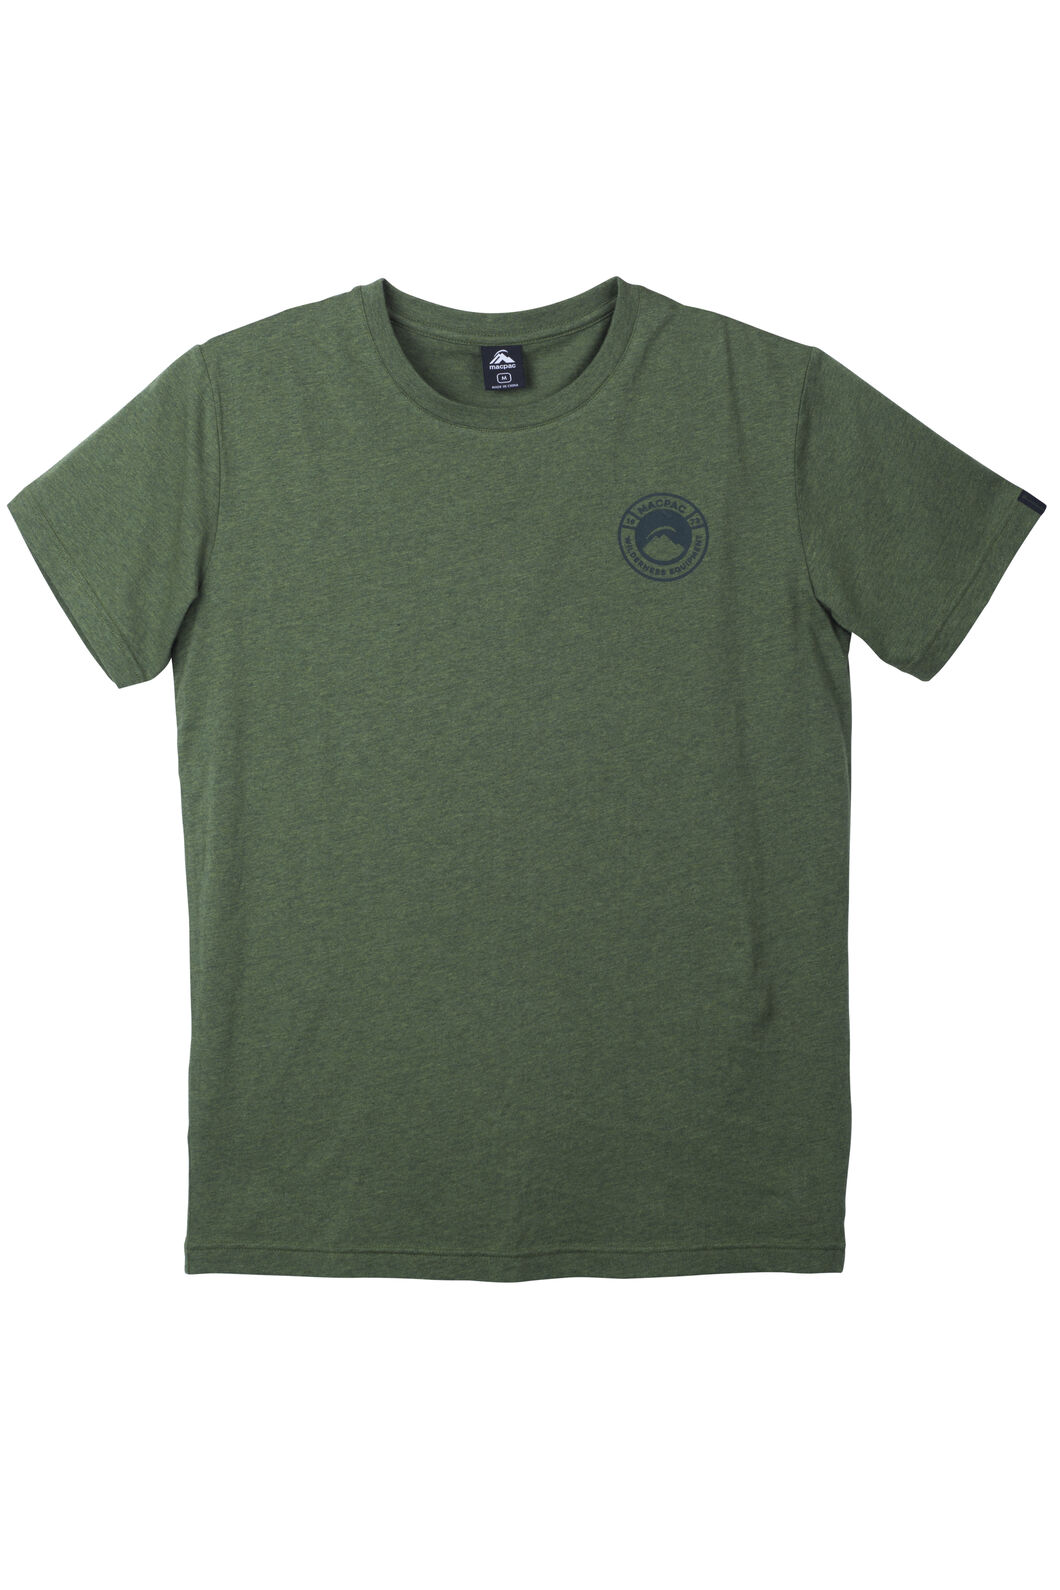 Gradient Organic Cotton Tee - Men's, Rifle Melange, hi-res